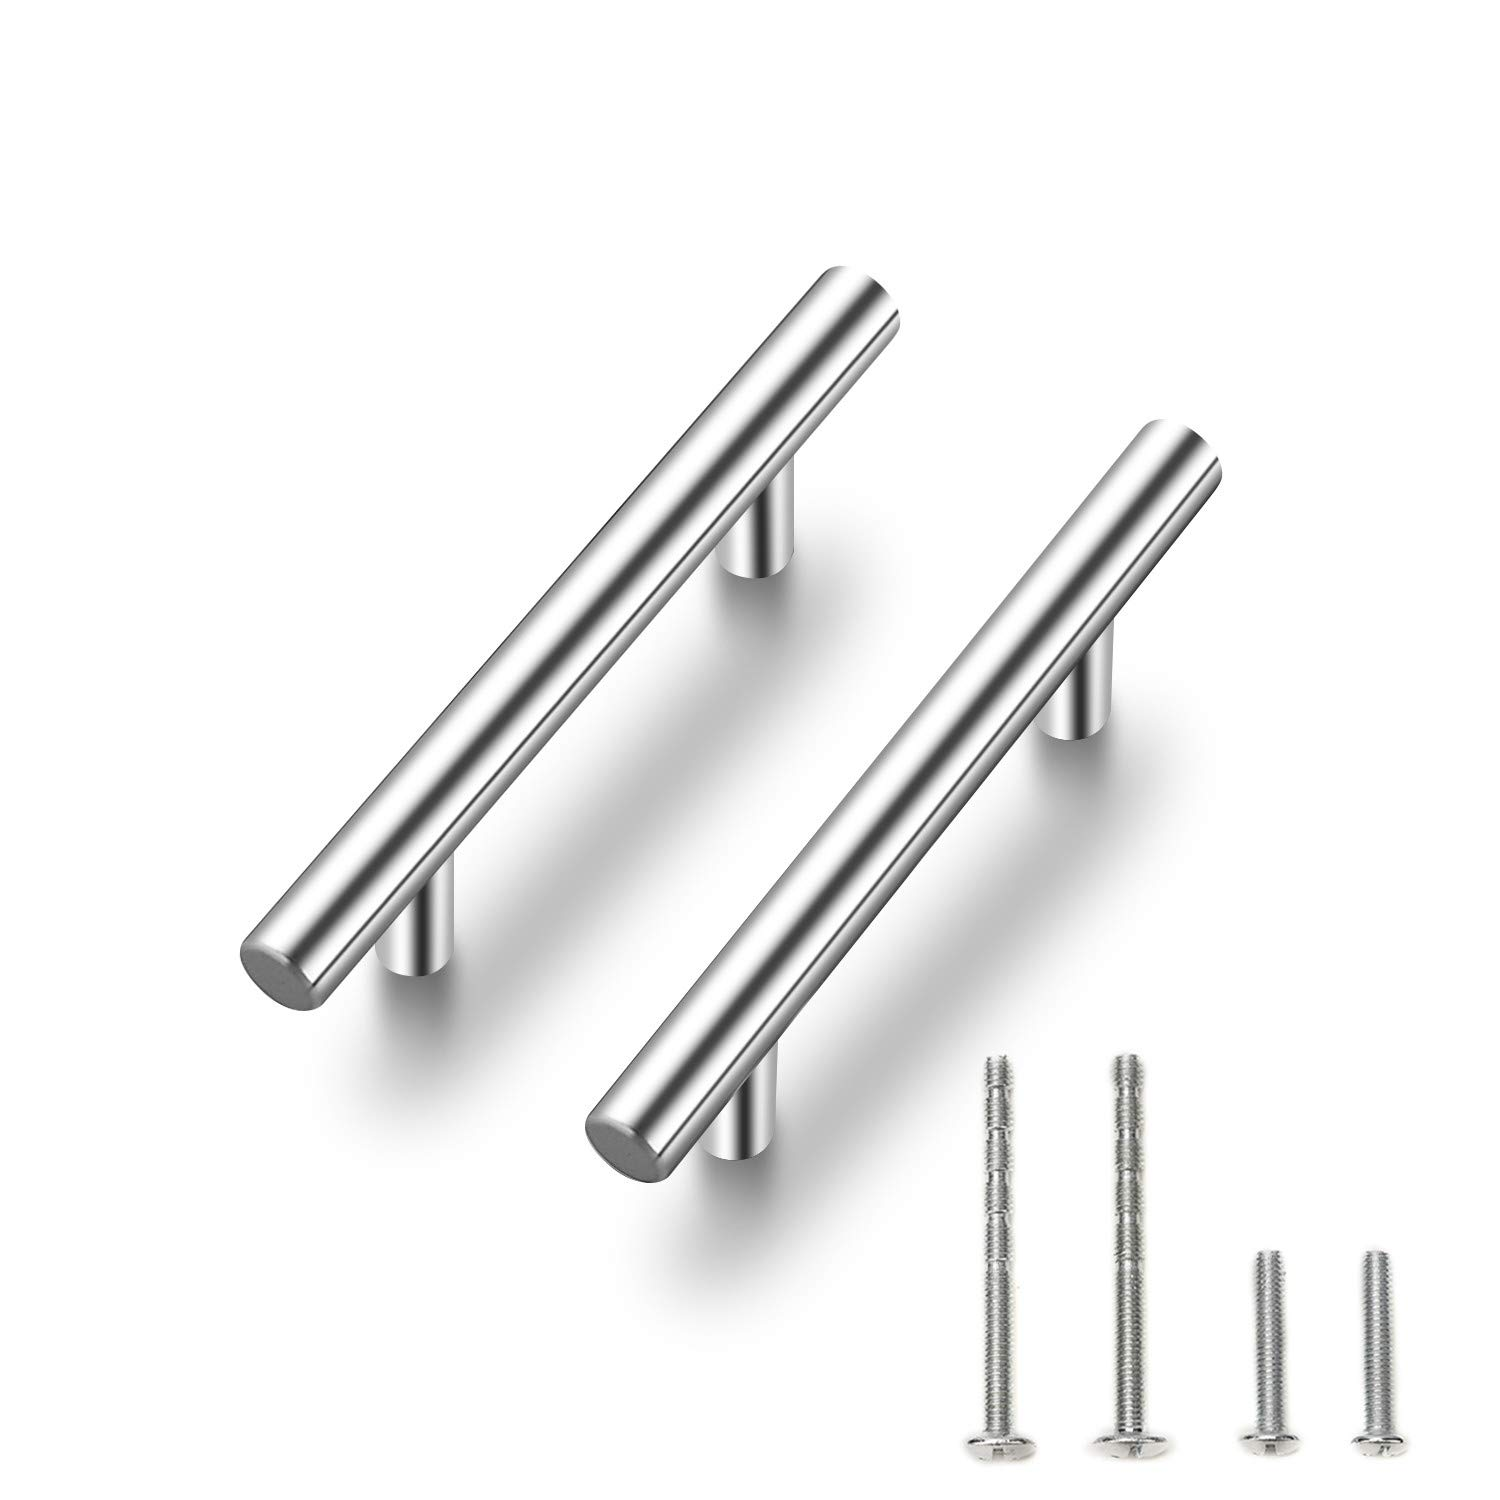 30 Pack | 5'' Cabinet Pulls Brushed Nickel Stainless Steel Kitchen Cupboard Handles Cabinet Handles 5''Length, 3'' Hole Center